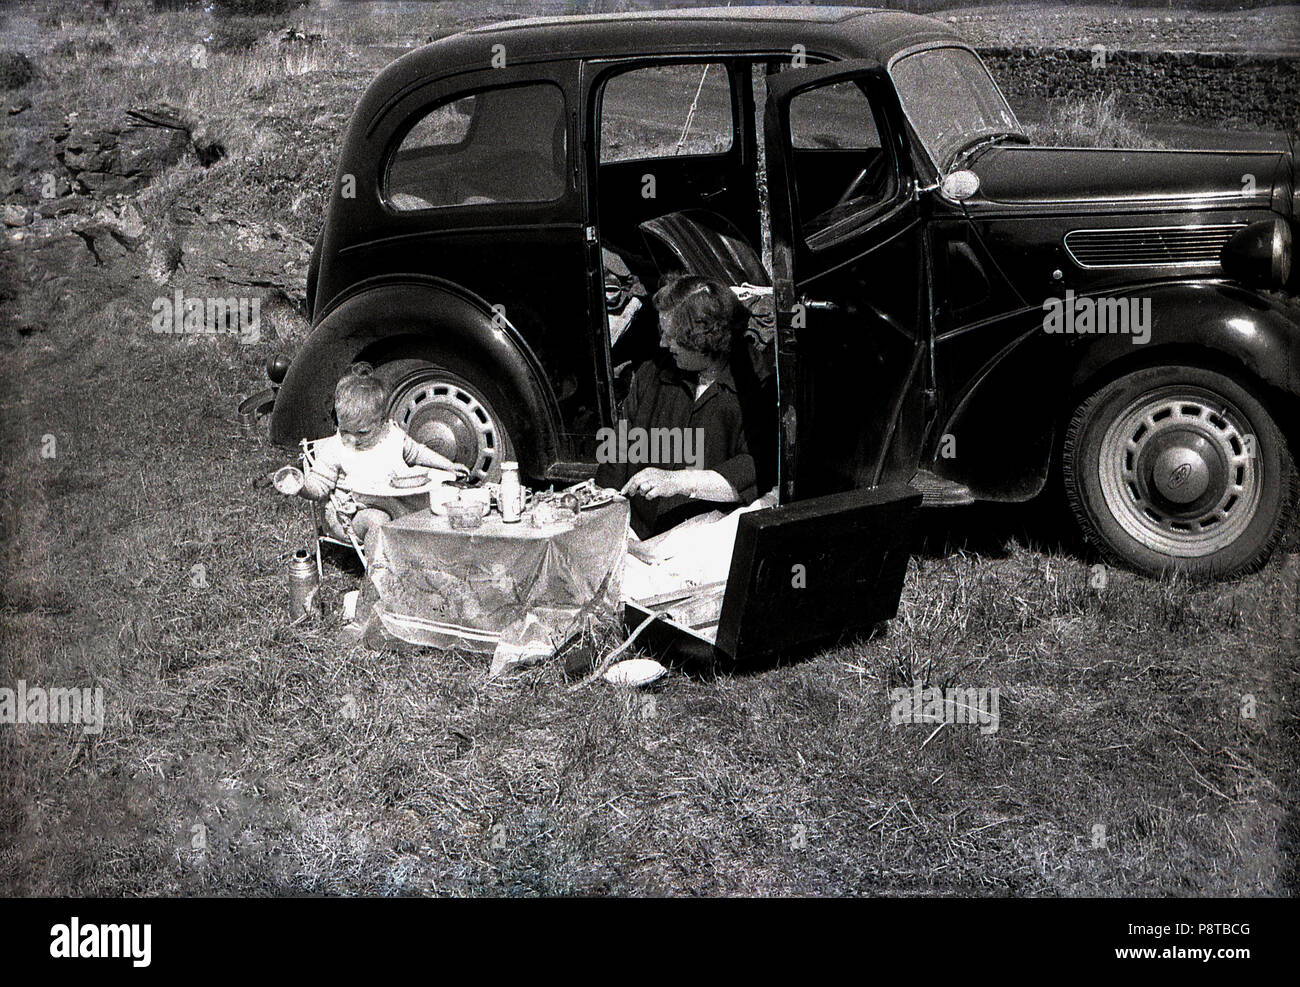 1950s, historical, a day out ....mother with young child sitting by their motor car having a civilised picnic set up on a small table with tablecloth, England, UK. - Stock Image